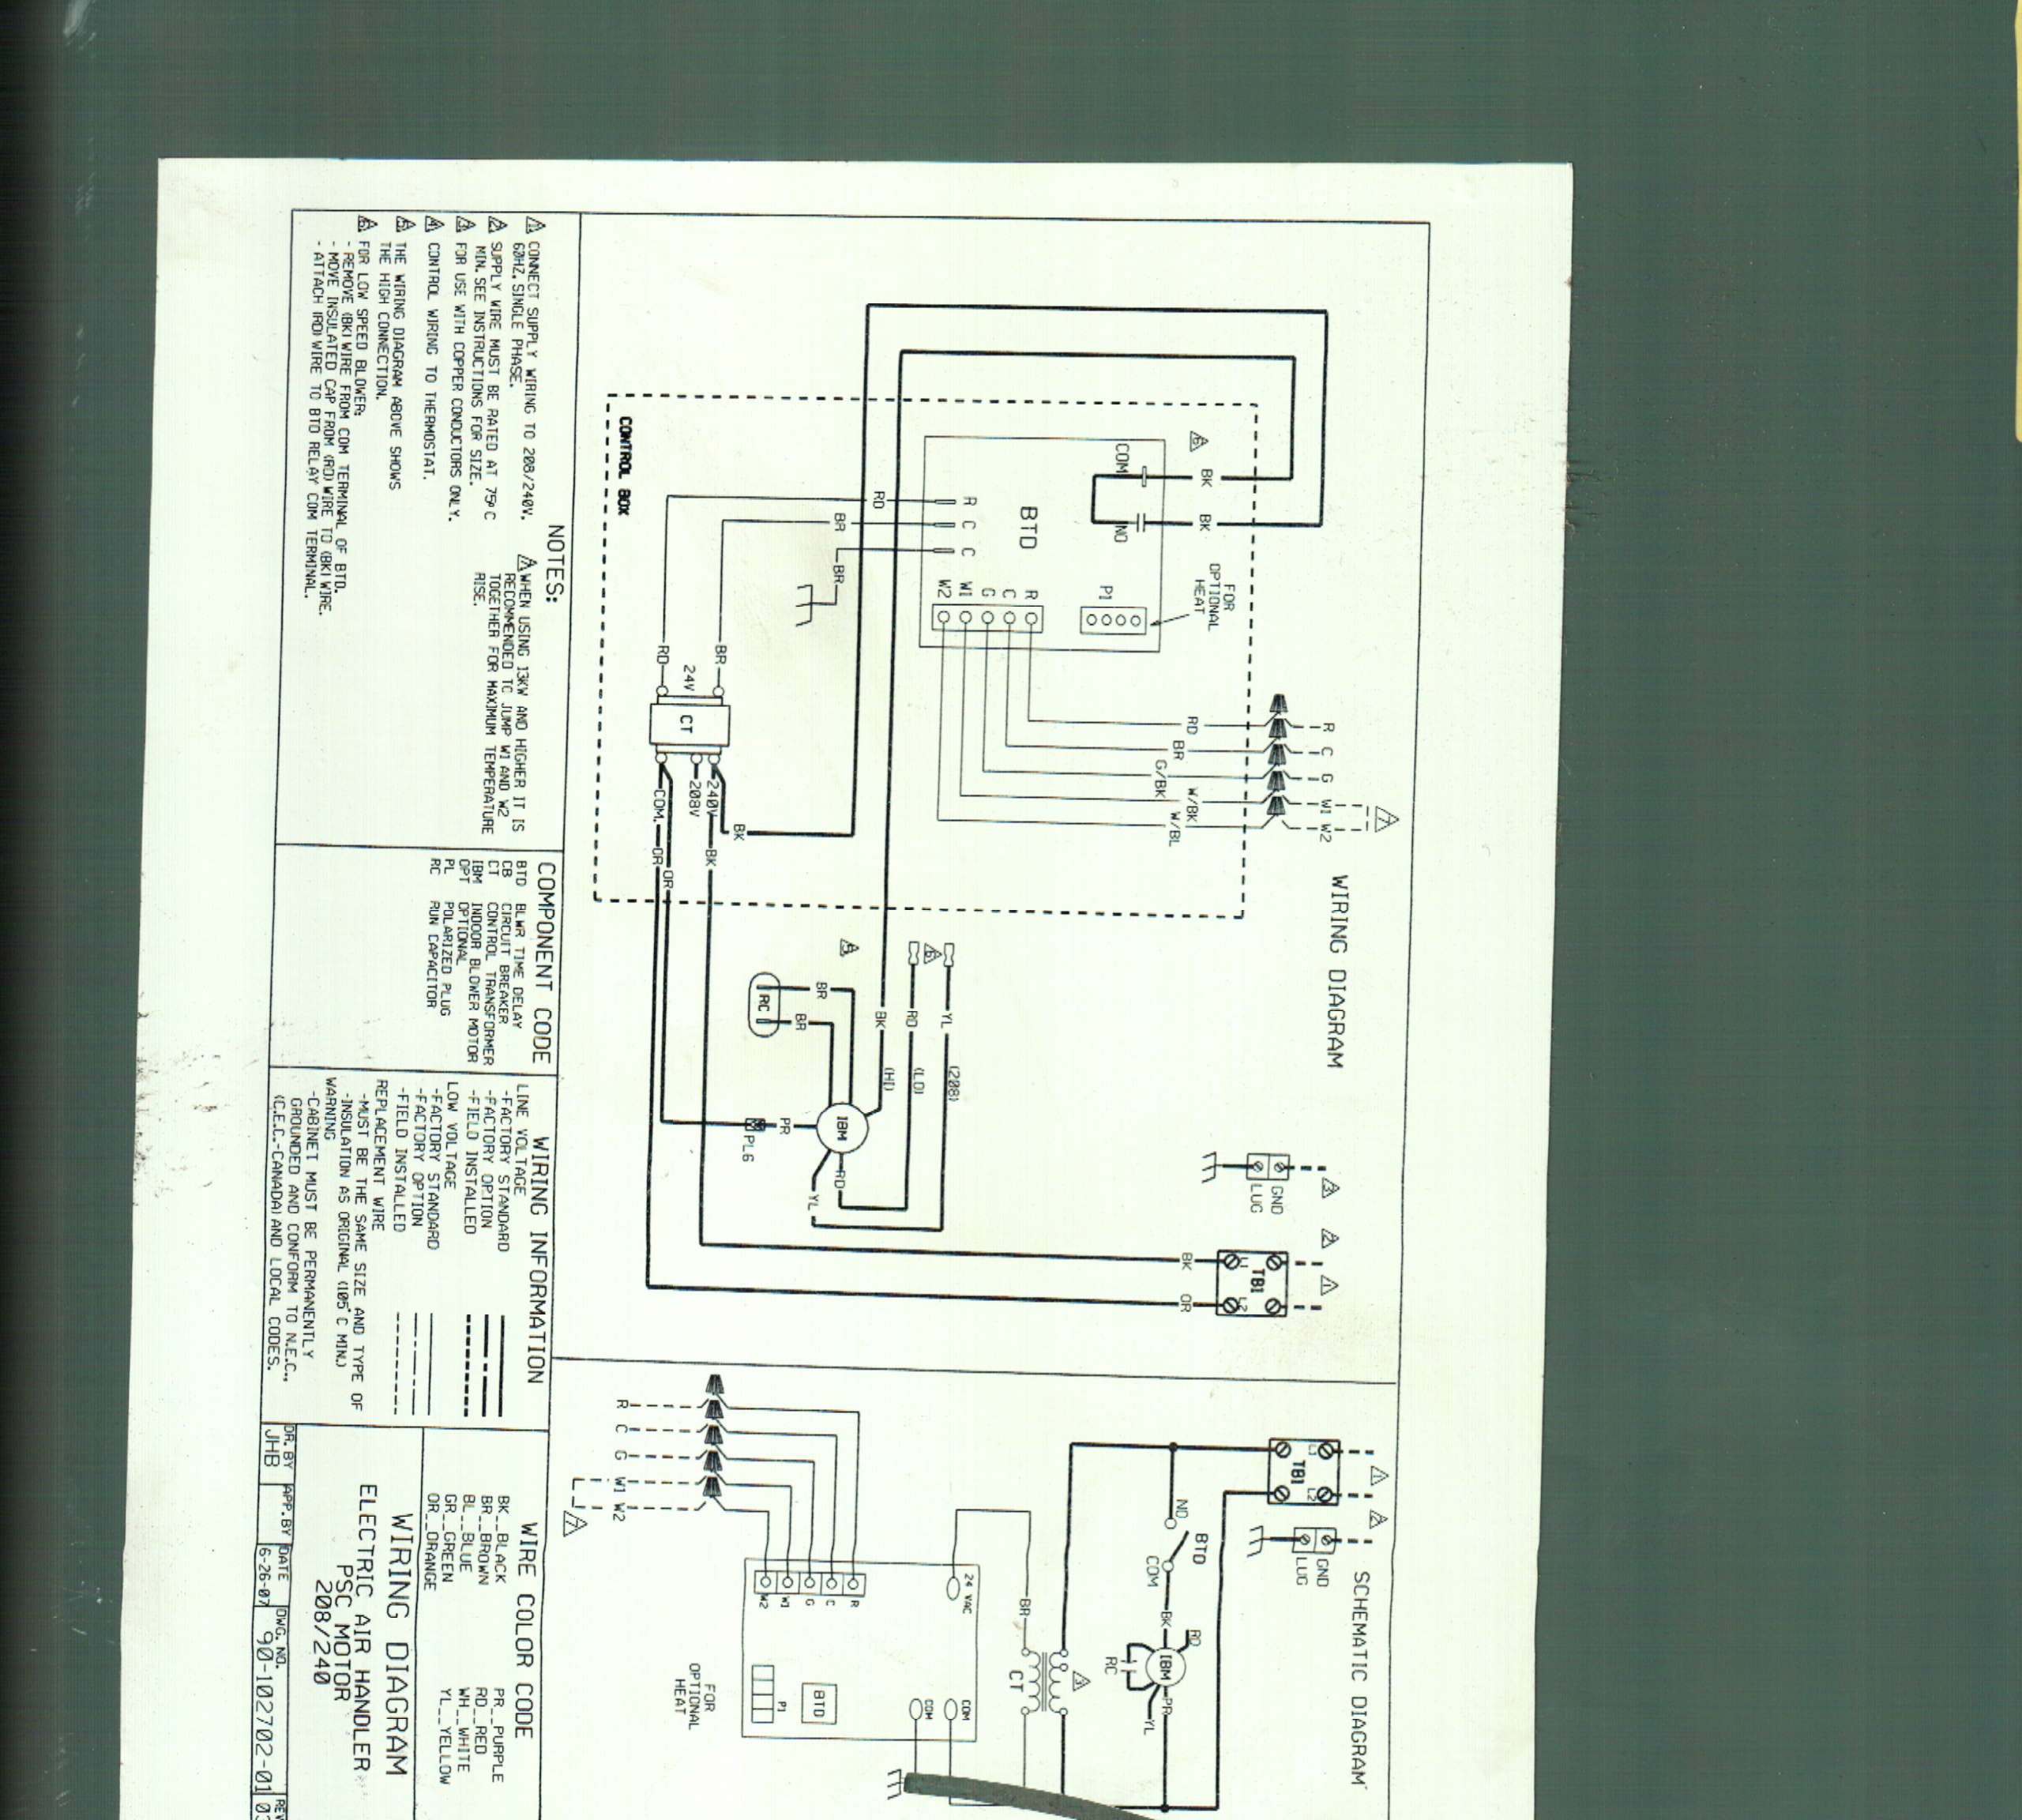 2012 11 14_181045_elec_diagram2 i am working on a ruud achiever heat pump model upnl 042jaz on a hunter thermostat 44132 wiring diagram at soozxer.org